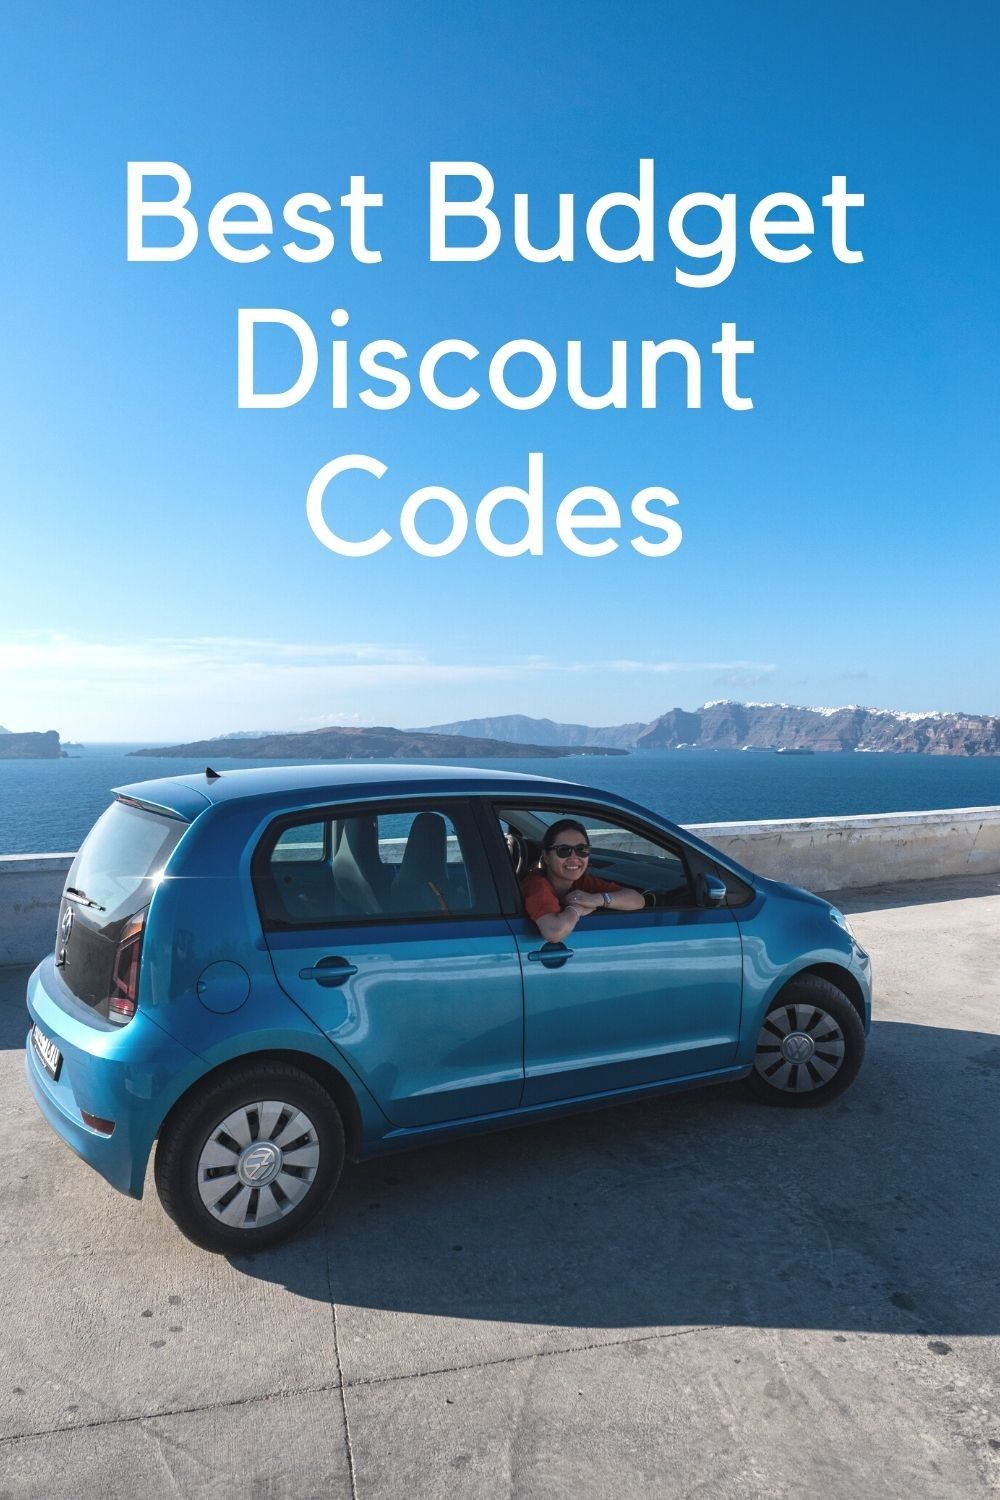 Best Budget BCD Codes To Save Money on Car Rentals in 2020